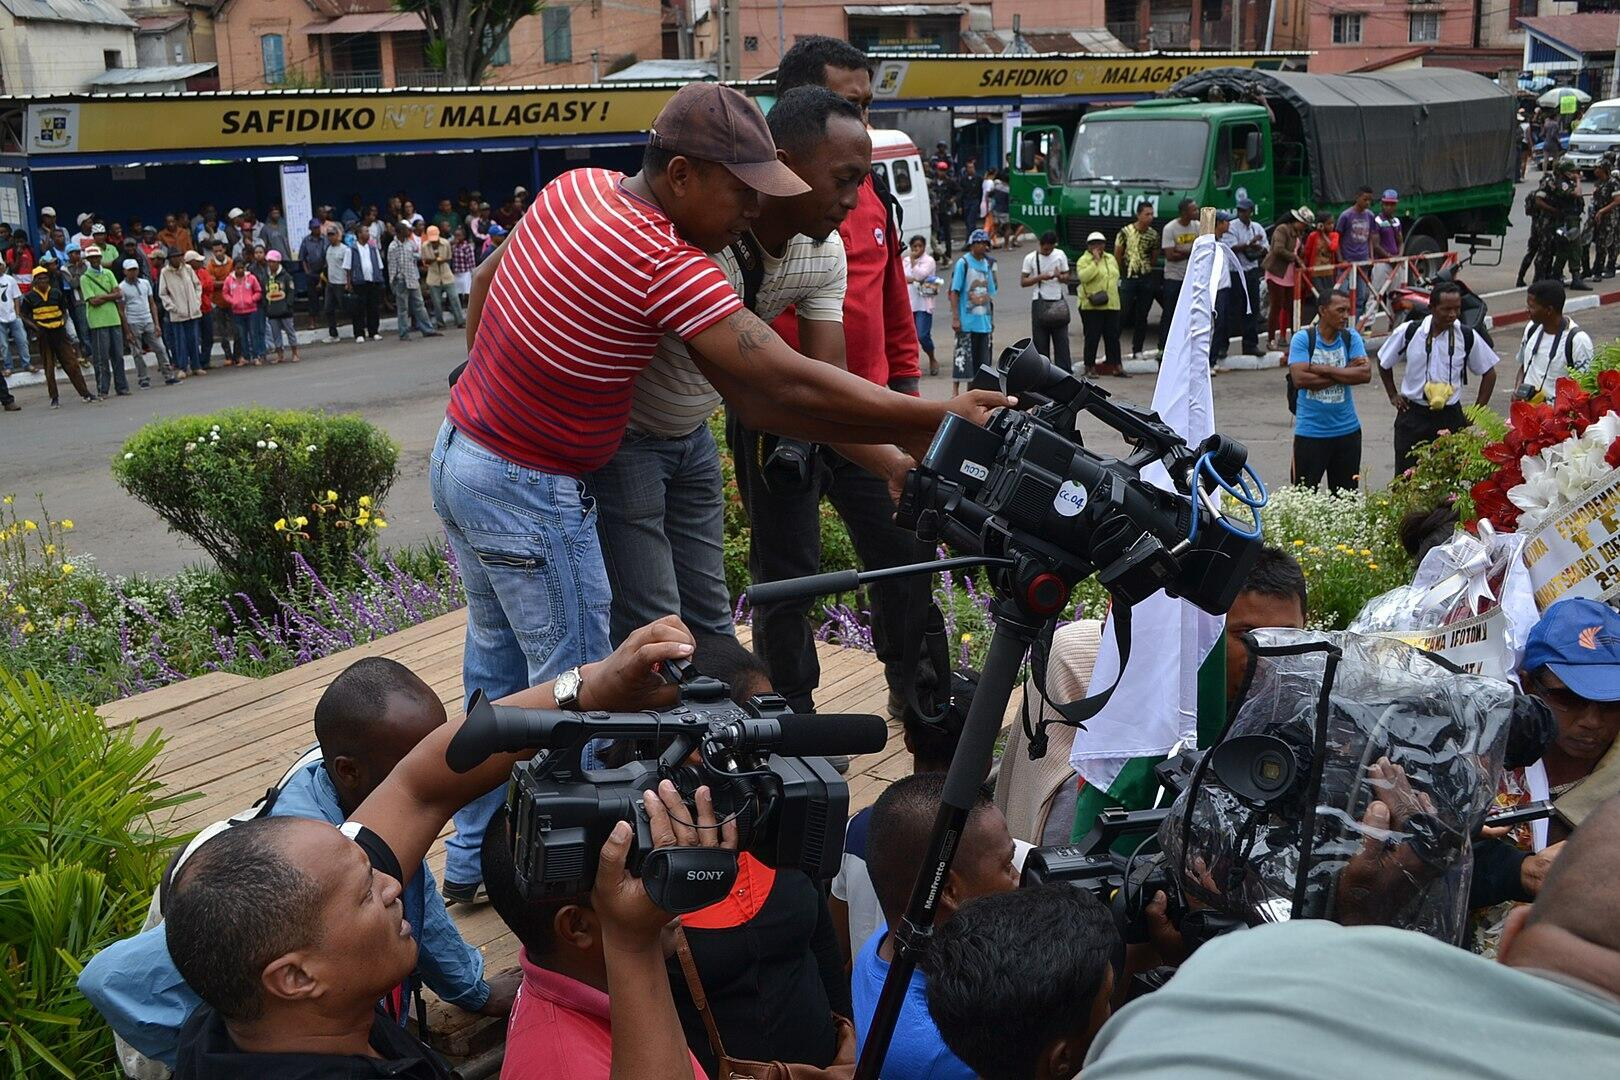 Journalists at work in Madagascar